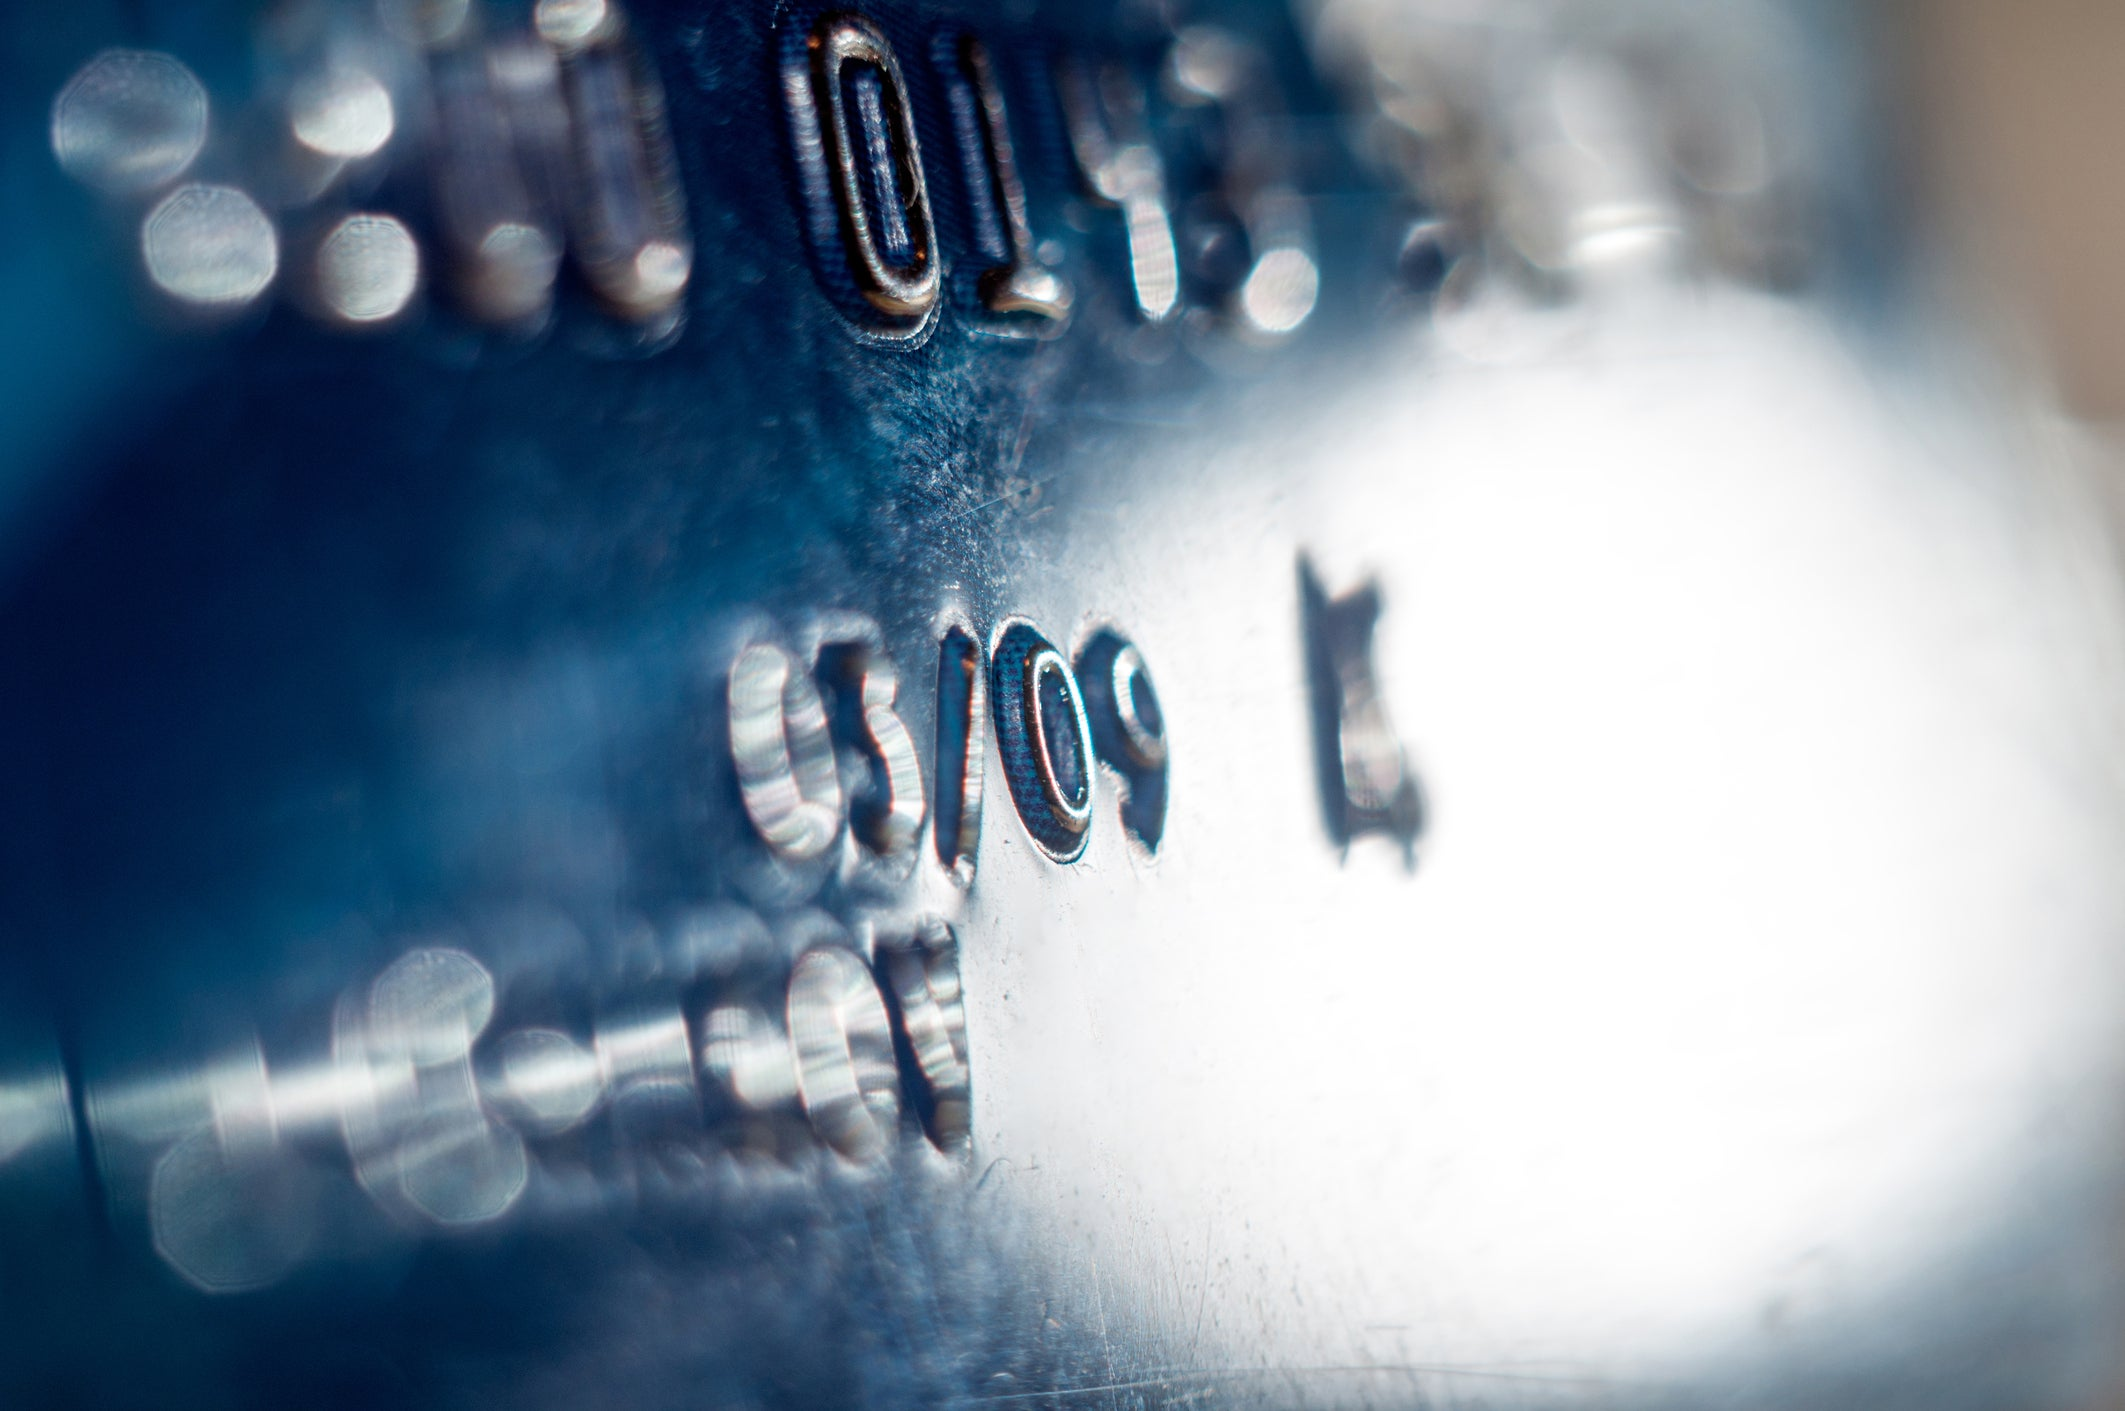 Close-up of partial credit card number on dark blue credit card.